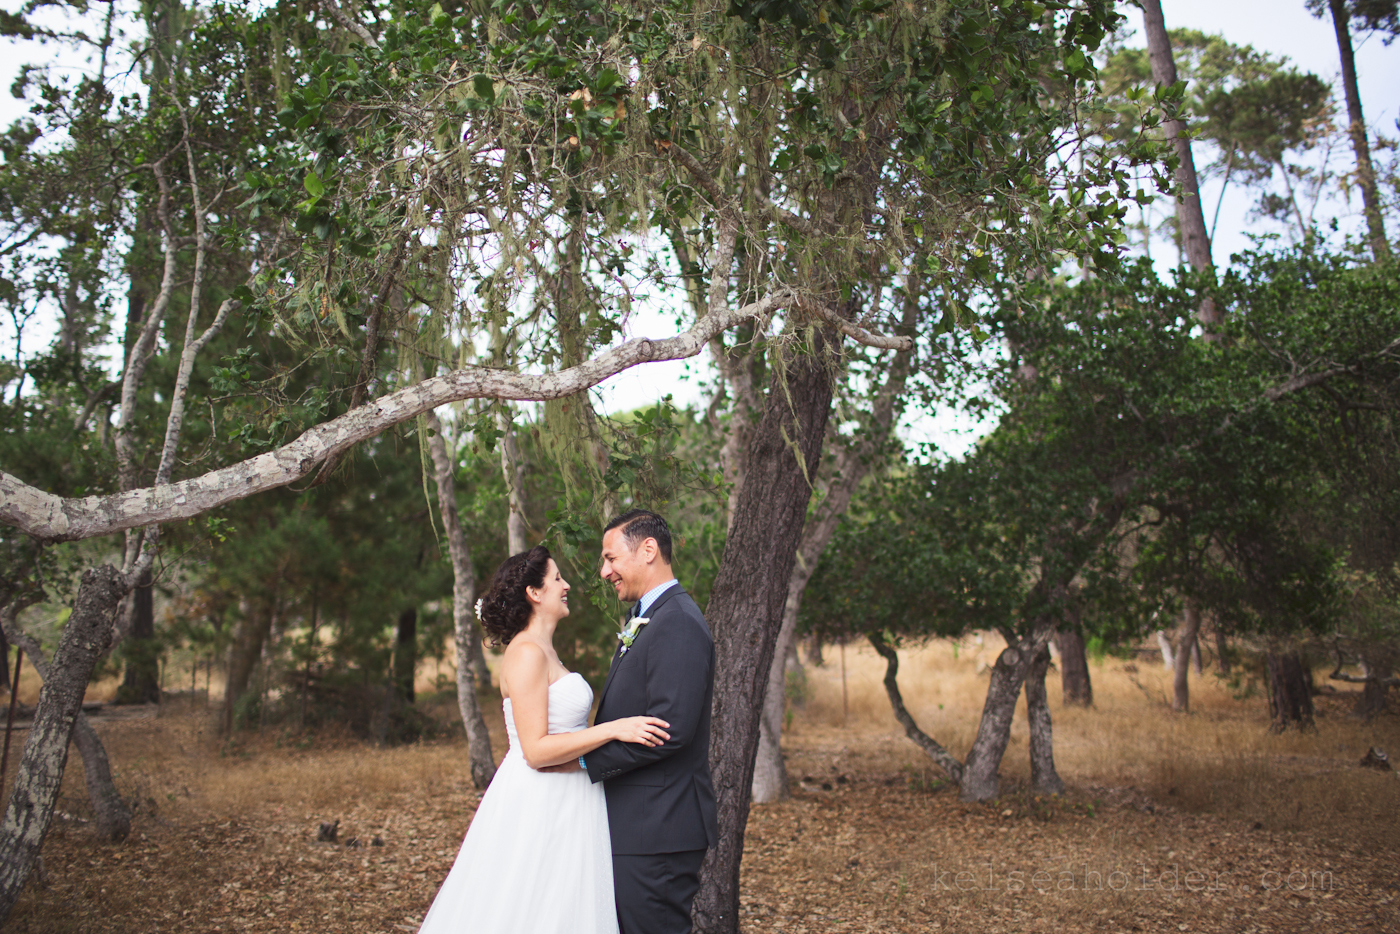 kelsea_holder_eco_outdoor_california_wedding039